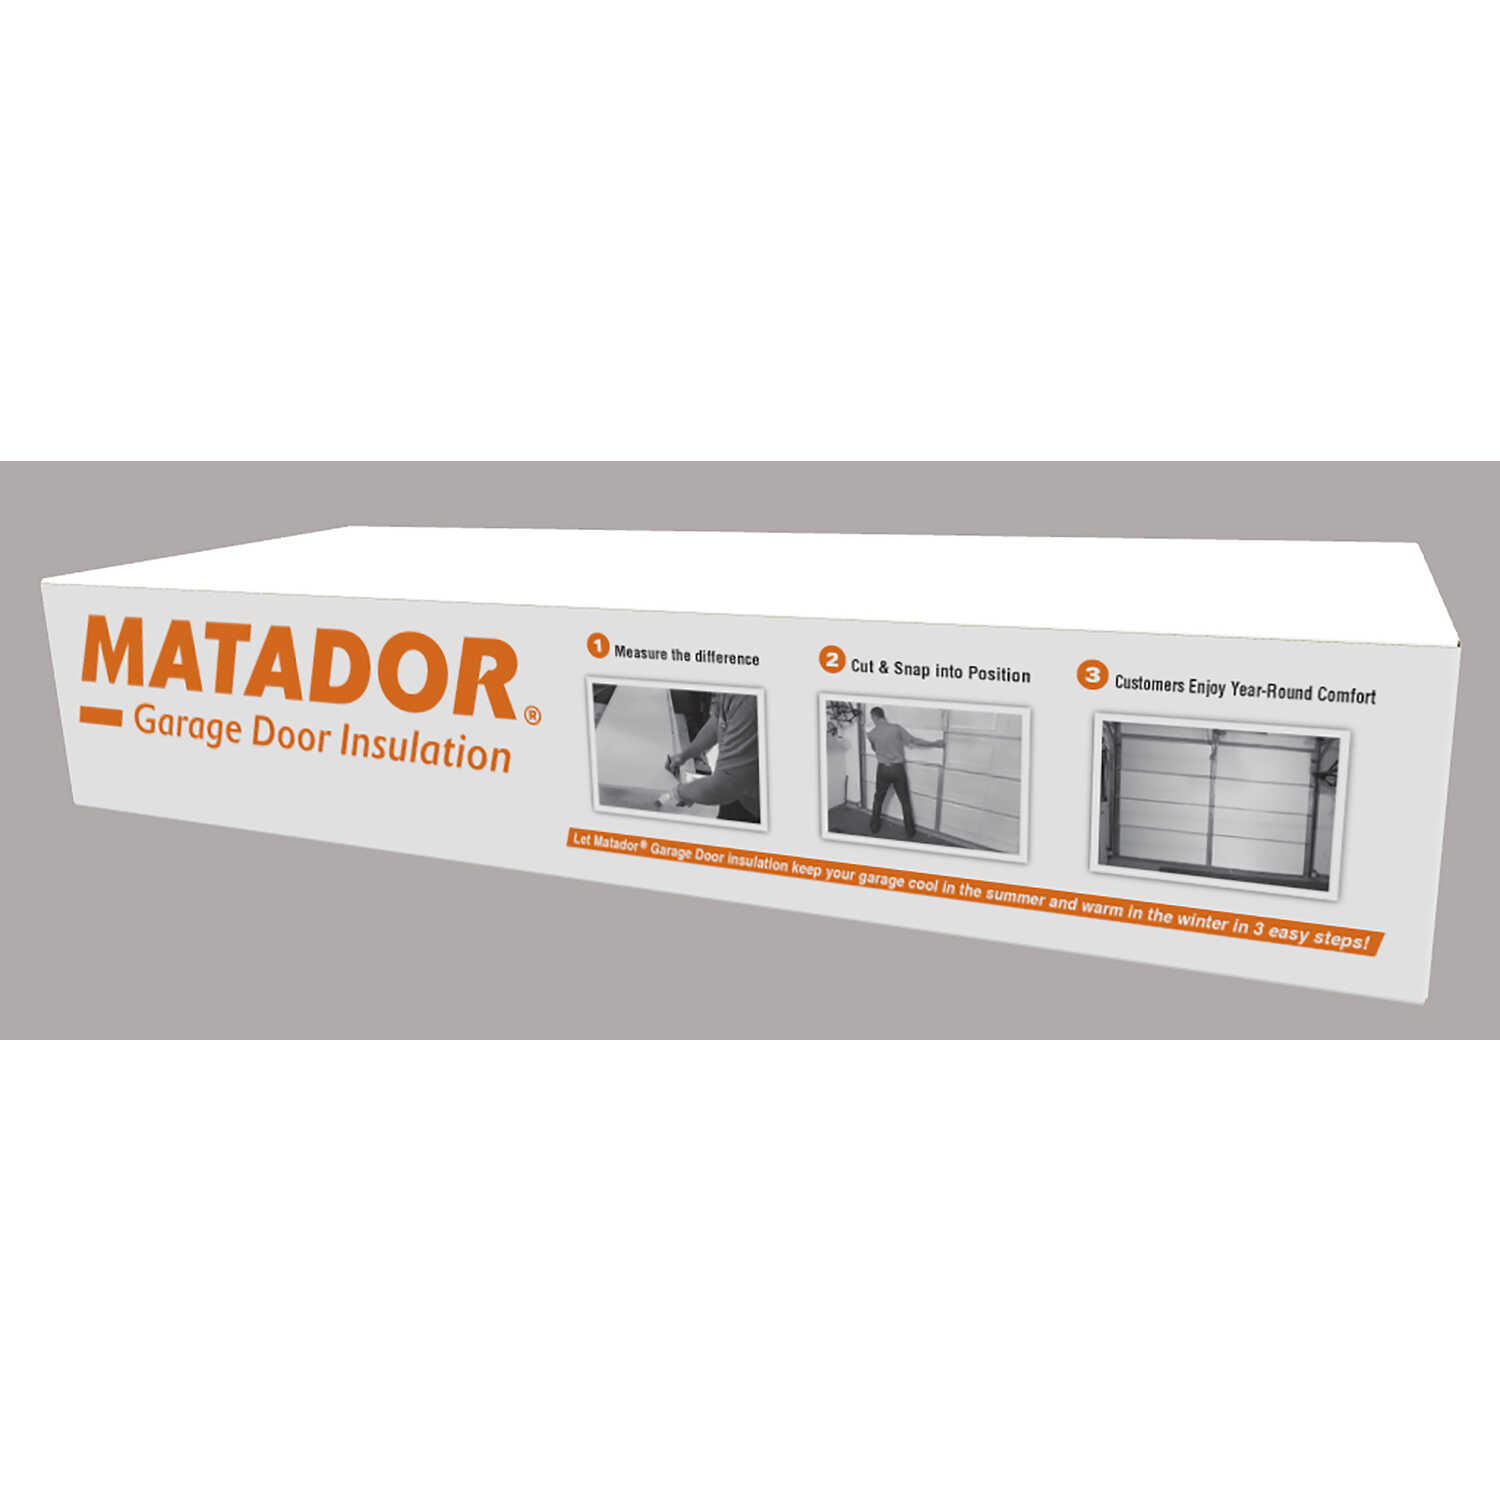 Matador  21 in. W x 55 in. L 4.8  Garage Door Insulation Kit  Batt  49 sq. ft.